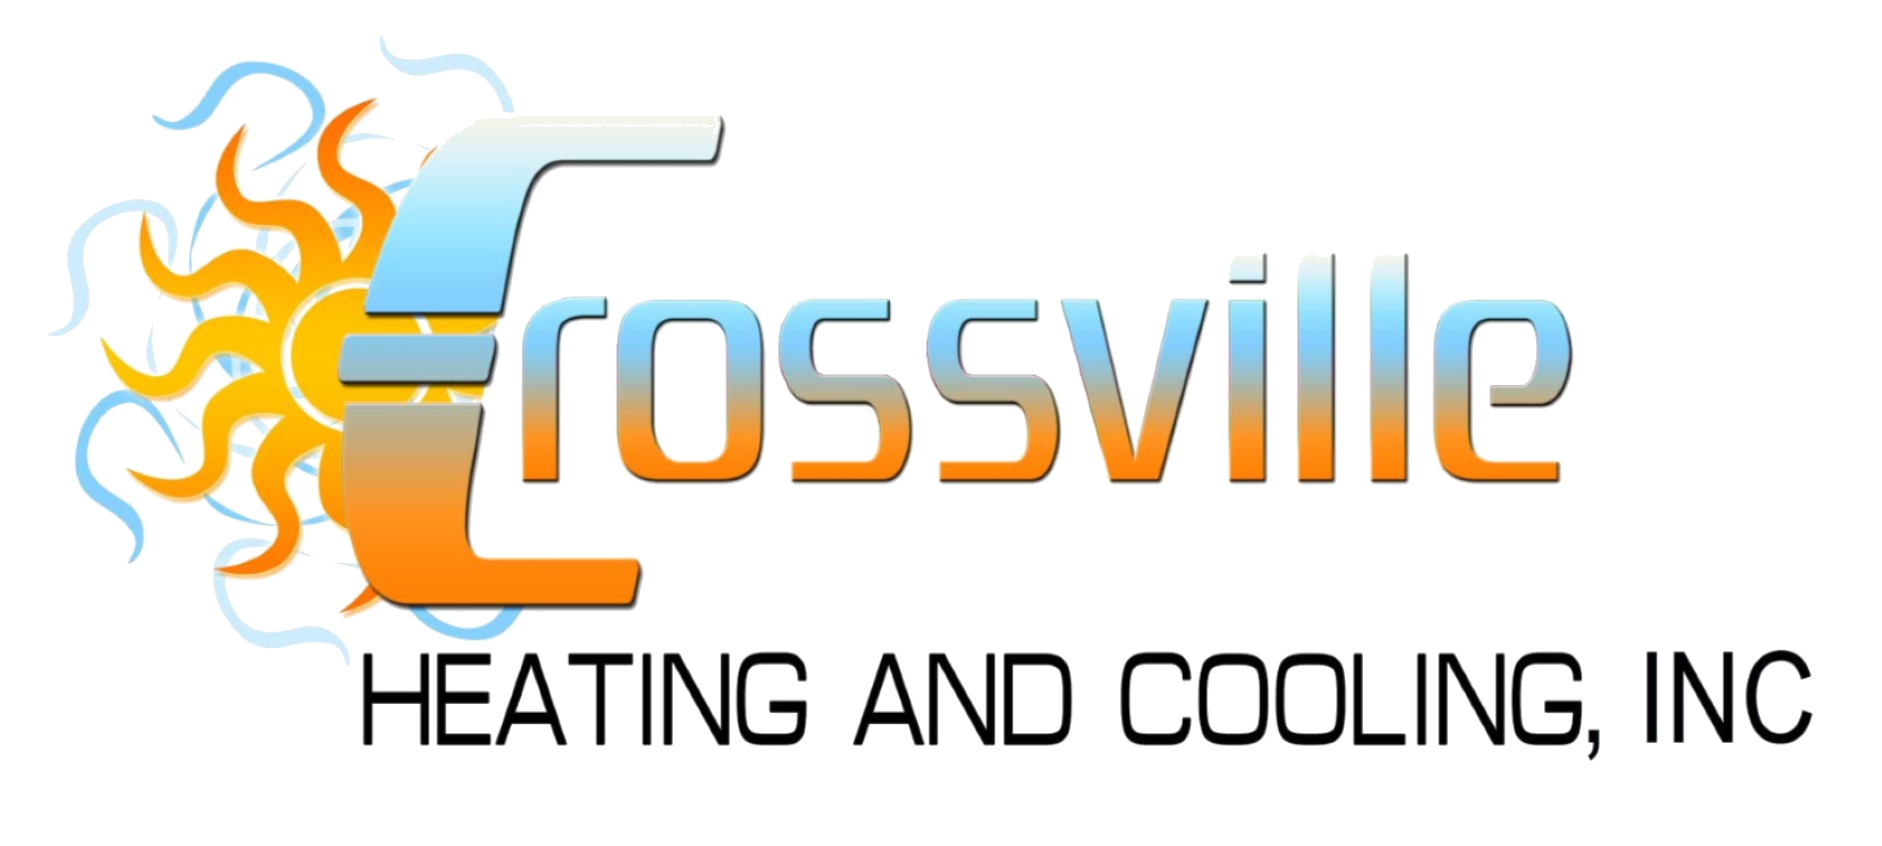 Crossville Heating and Cooling